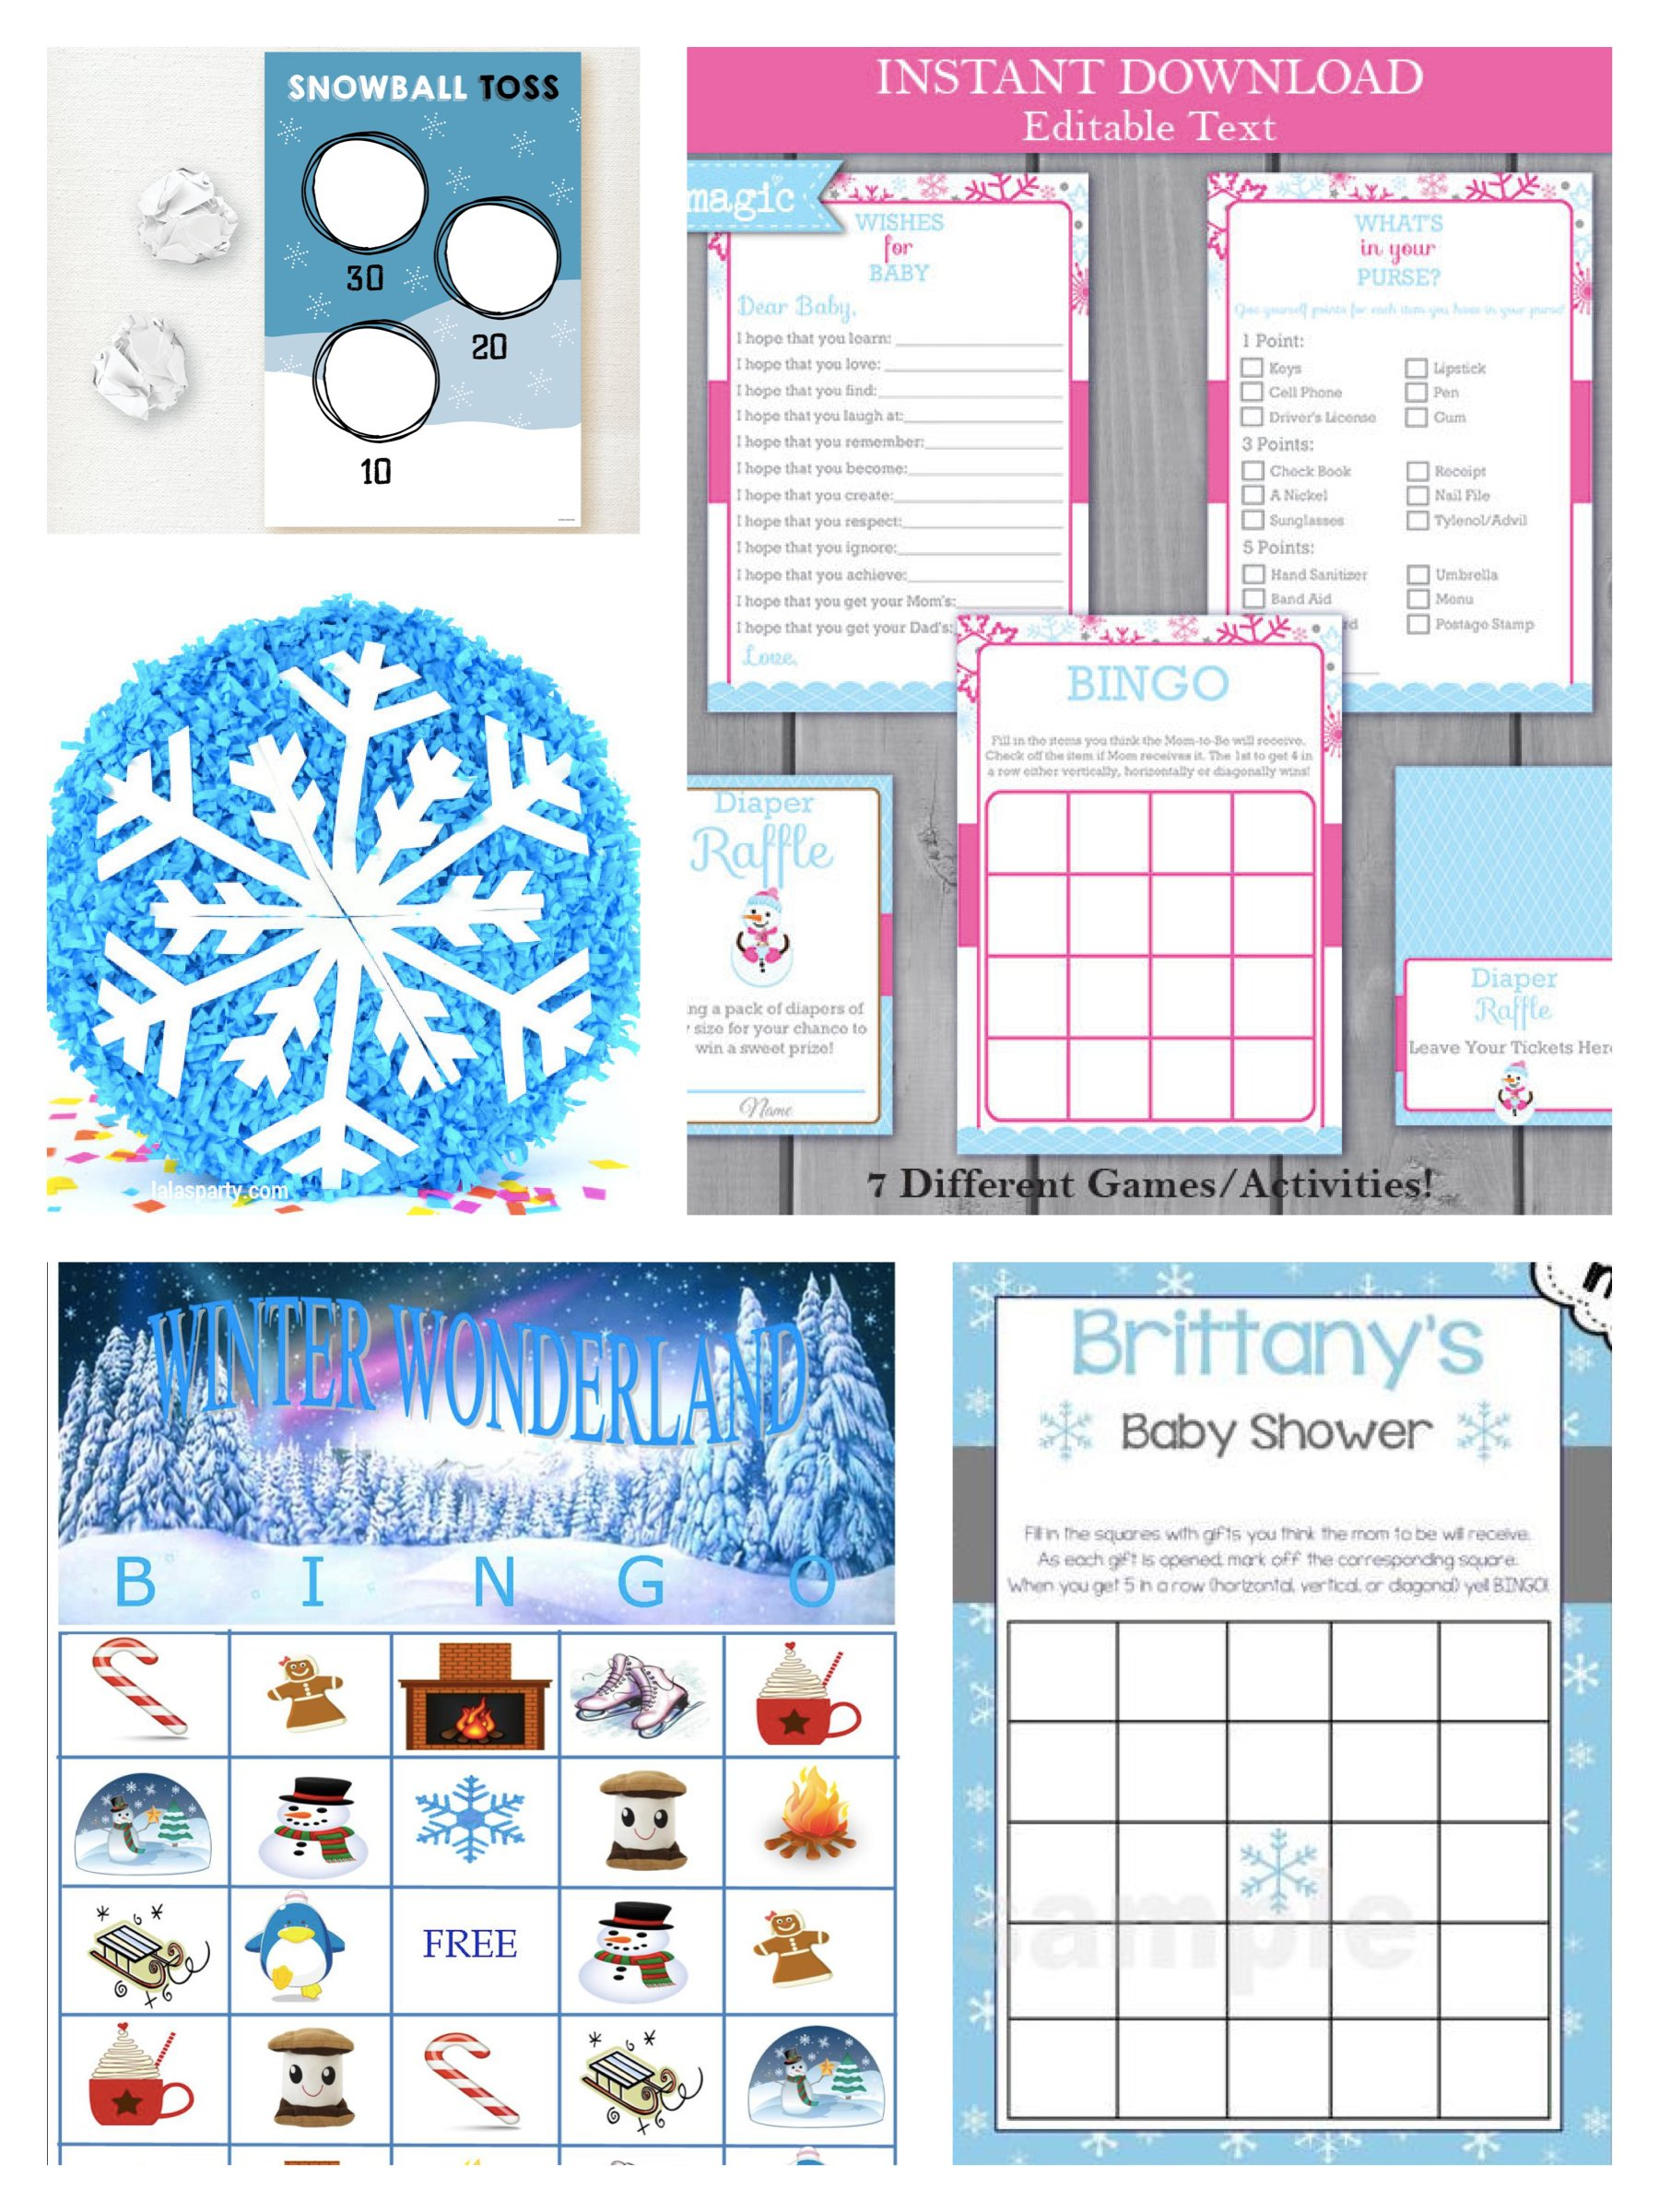 Winter Wonderland Party Games & Activities